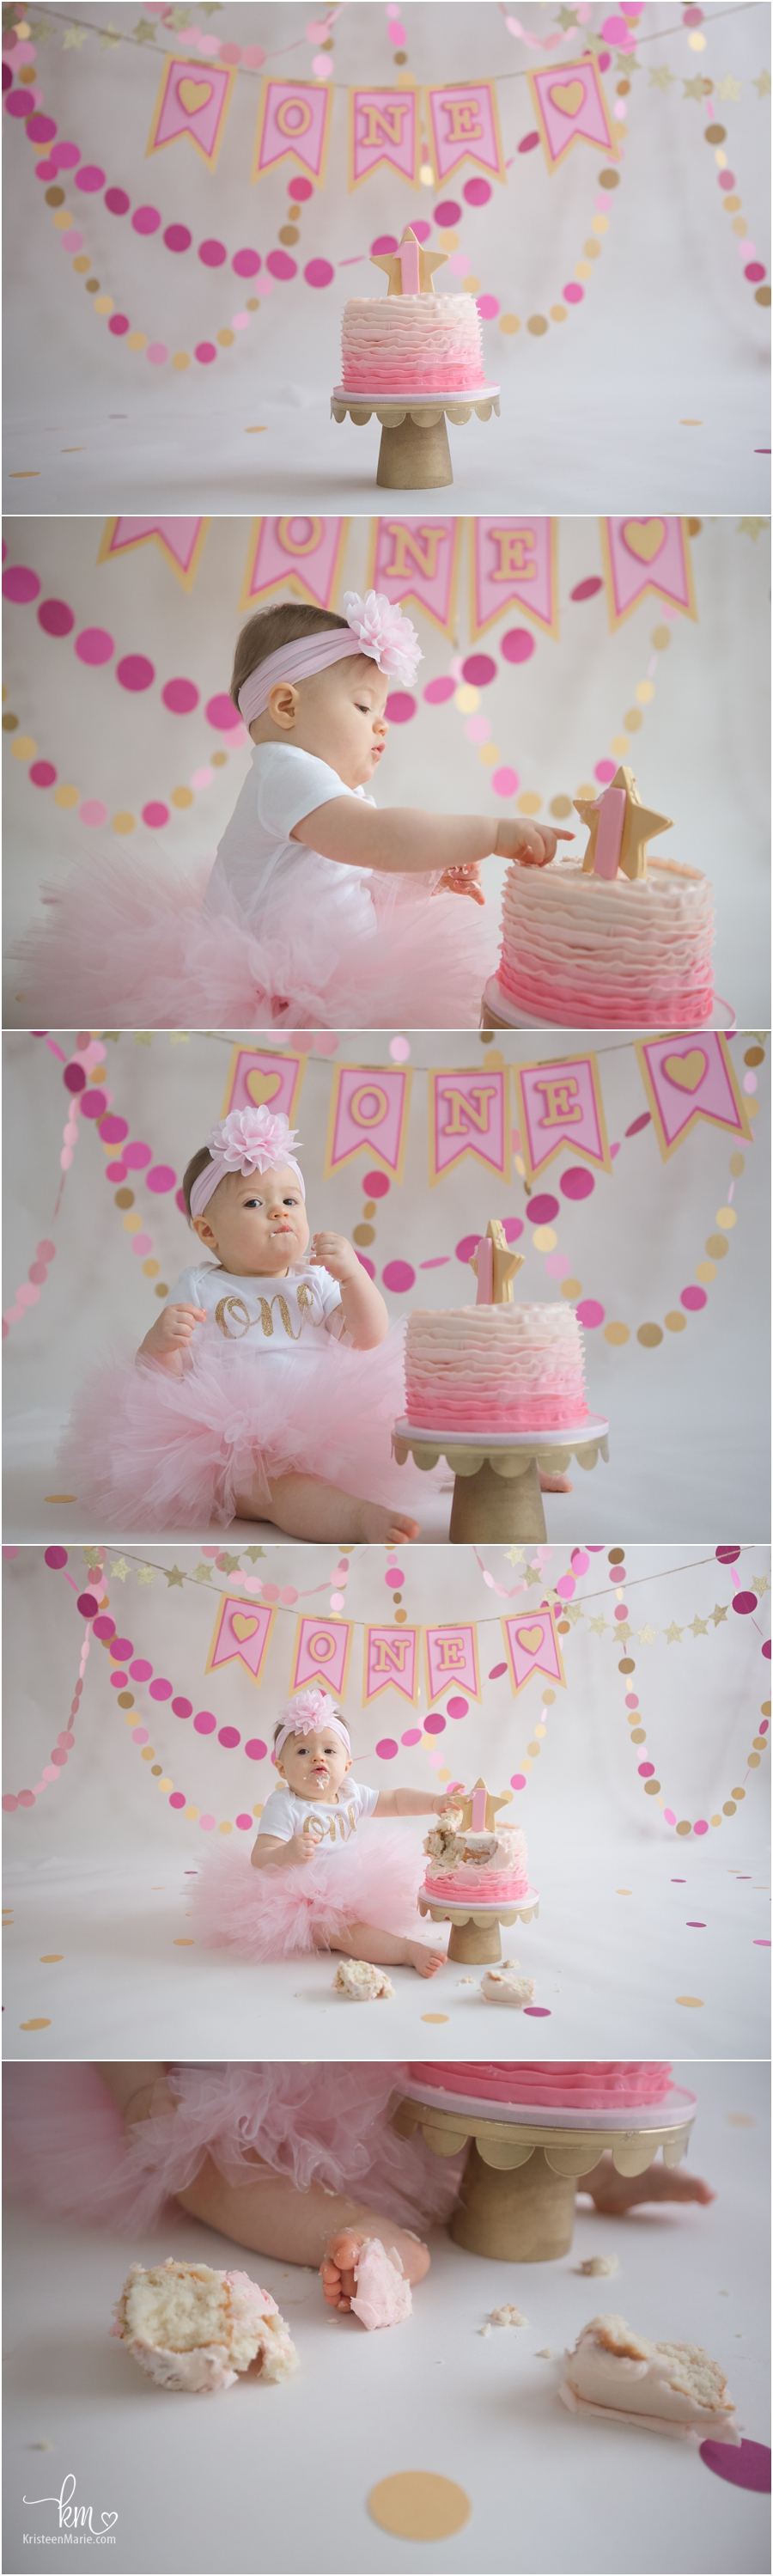 pink and gold cake smash session - heart and star themed cake smash photogrpahy